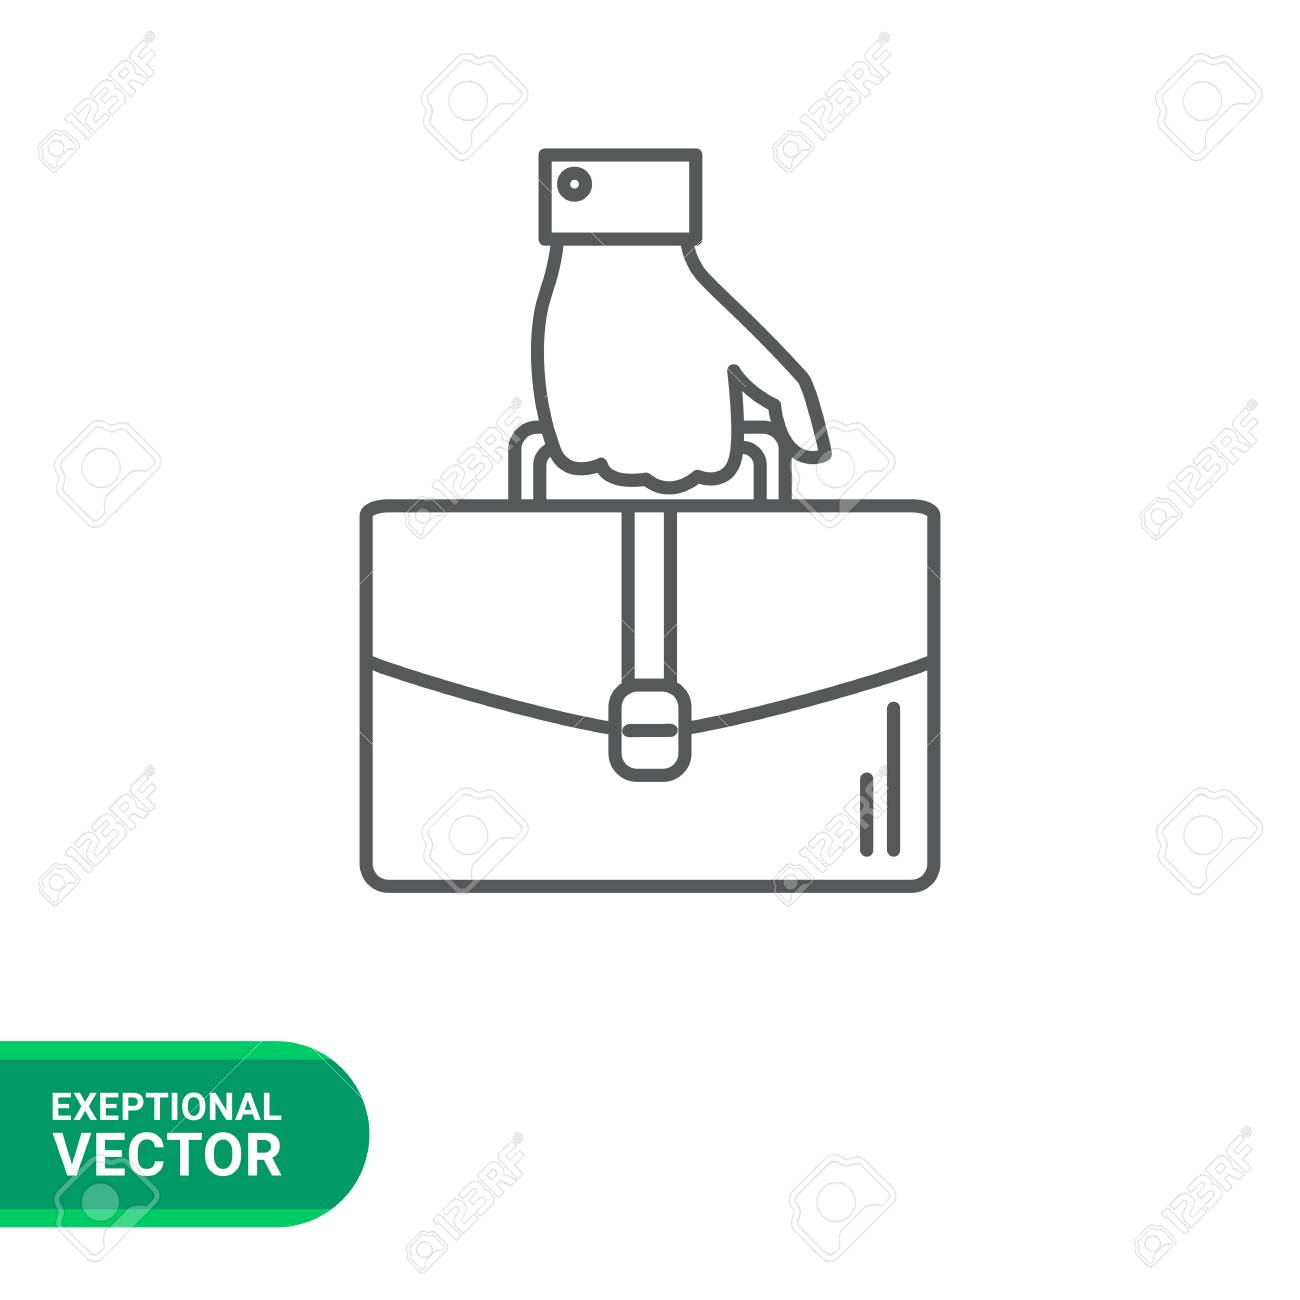 Icon Of Man Hand Carrying Briefcase Royalty Free Cliparts Vectors And Stock Illustration Image 58665964